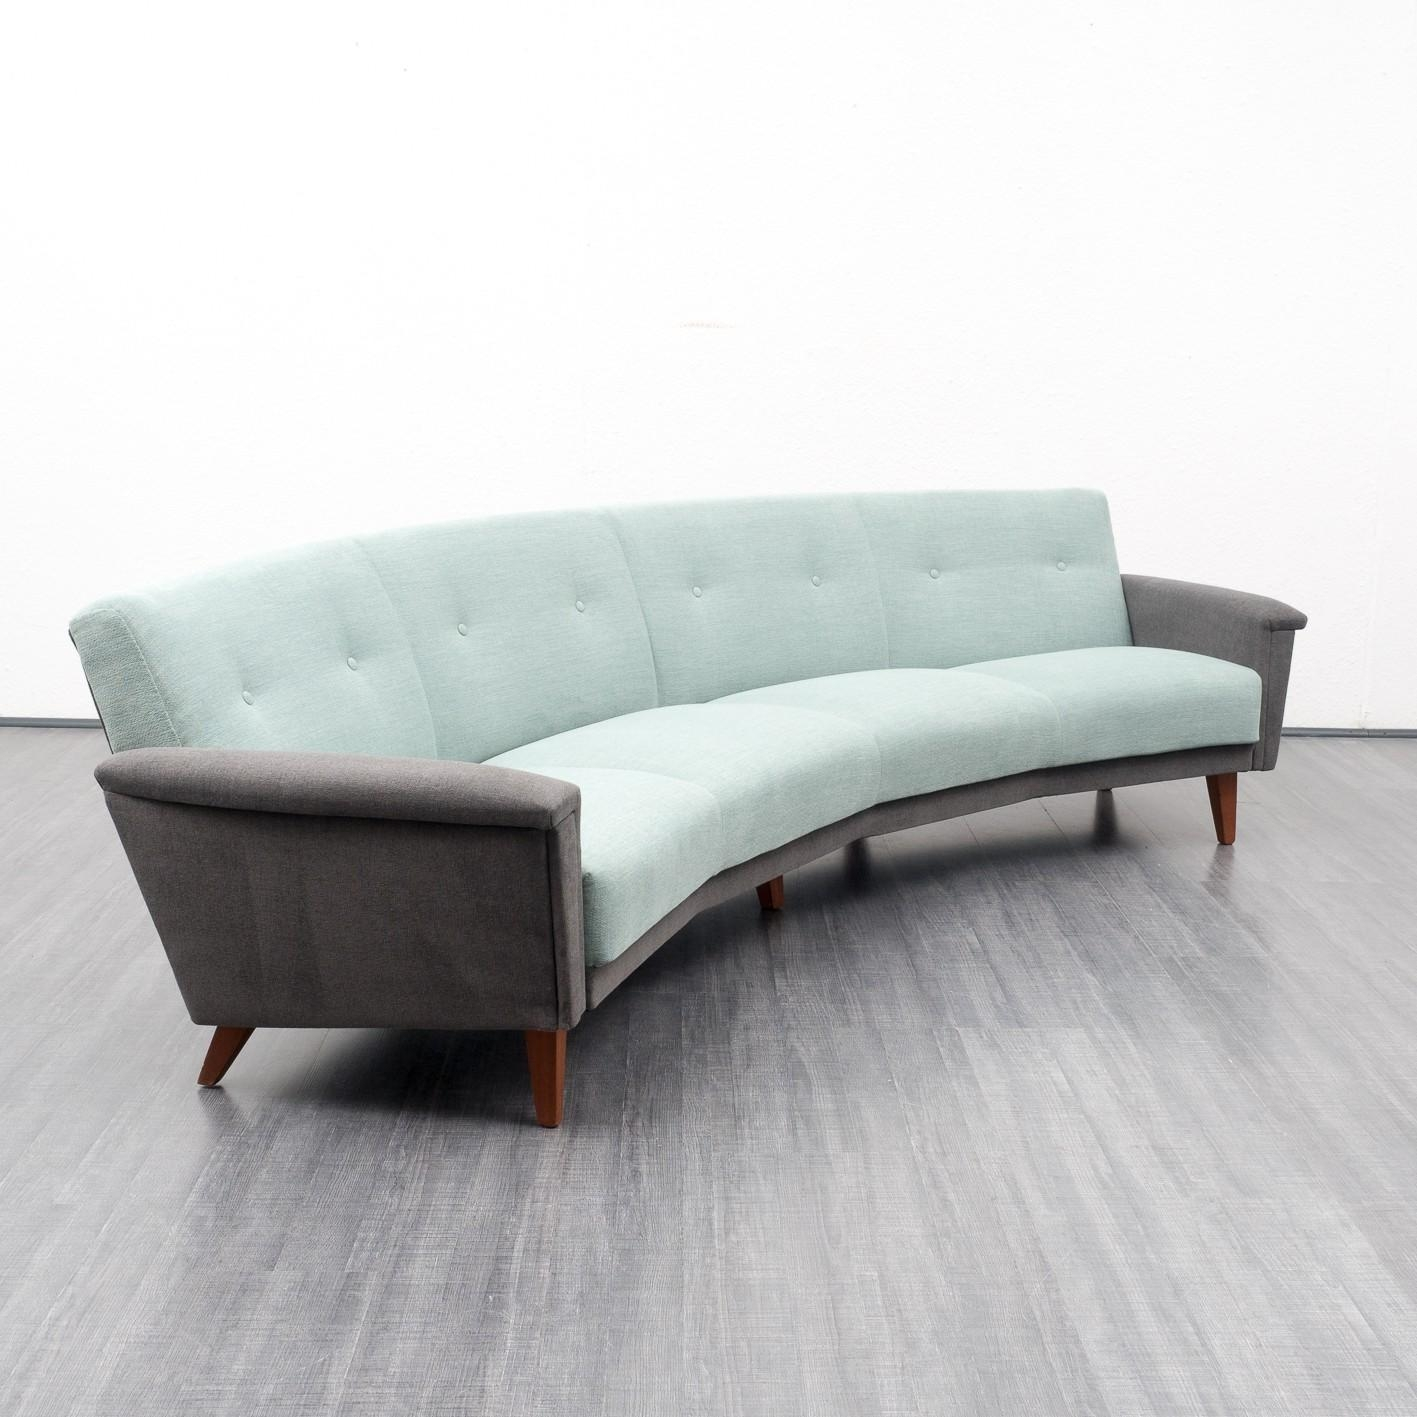 Semicircular Sofa In Light Turquoise And Grey Fabric – 1950S In Semicircular Sofa (Image 16 of 20)